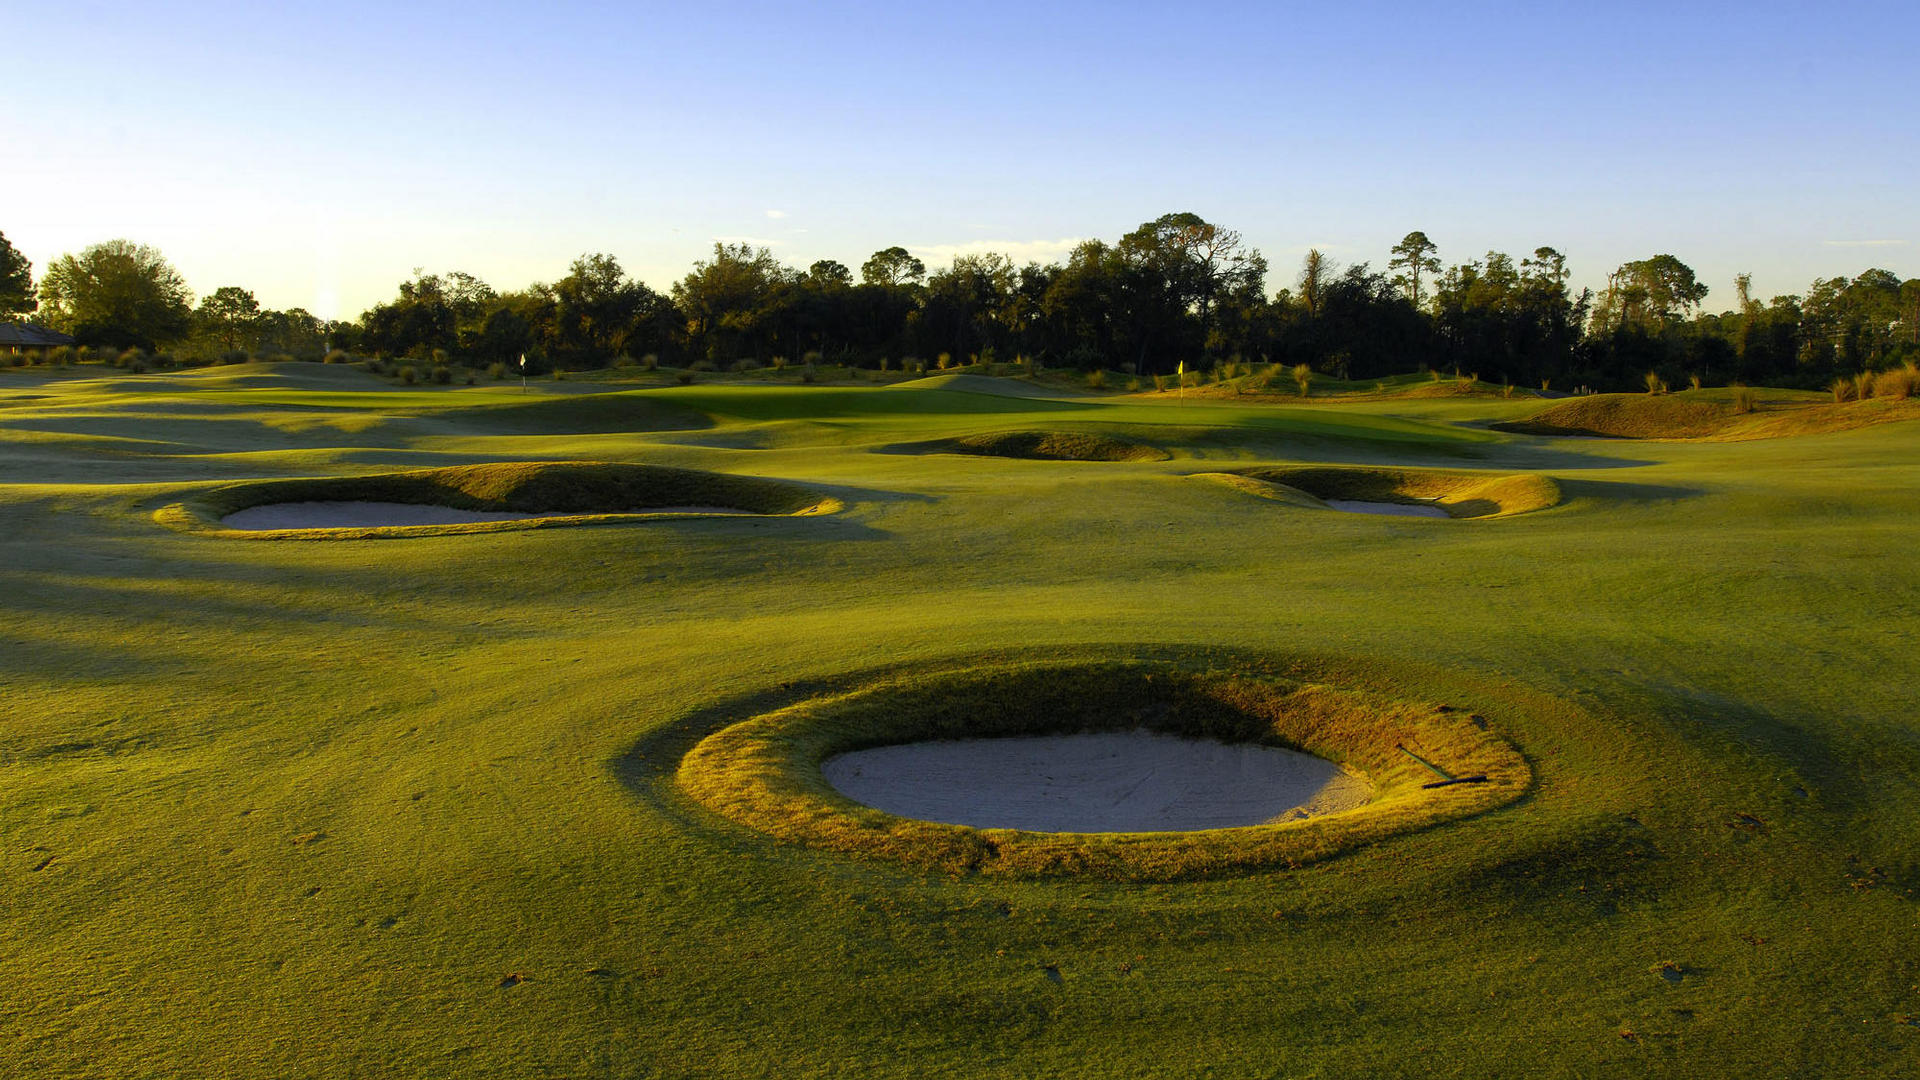 Orlando golf course at The Villas of Grand Cypress